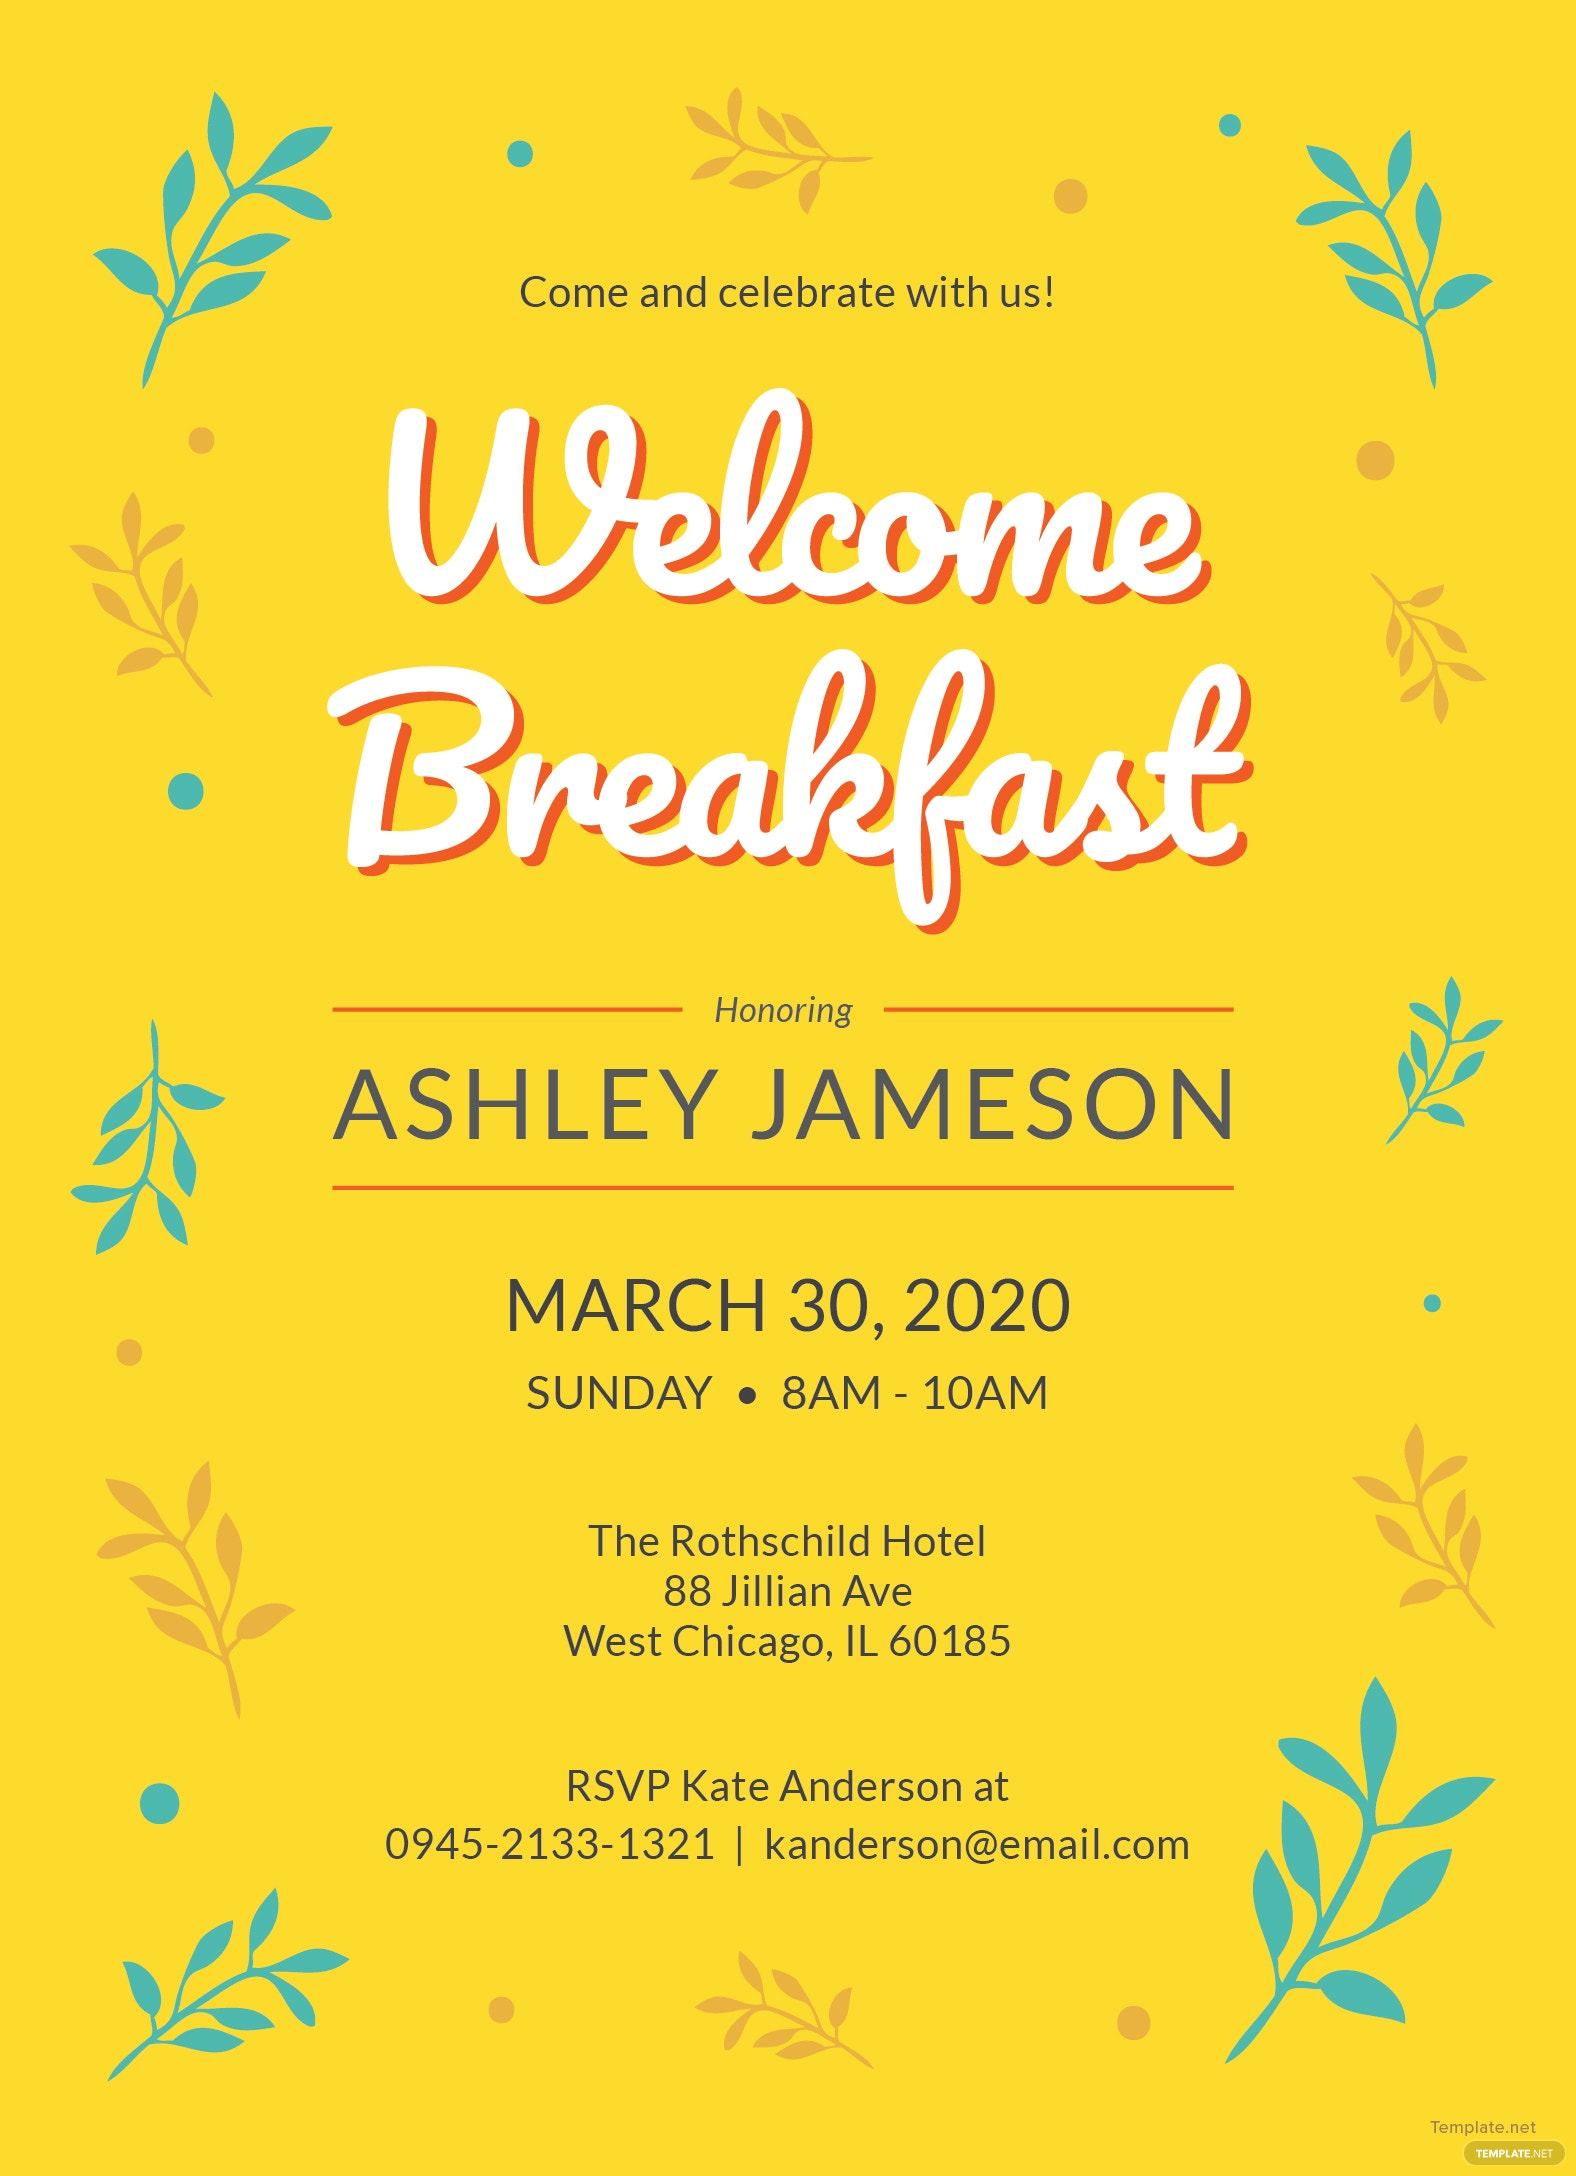 welcome breakfast invitation template in adobe photoshop  illustrator